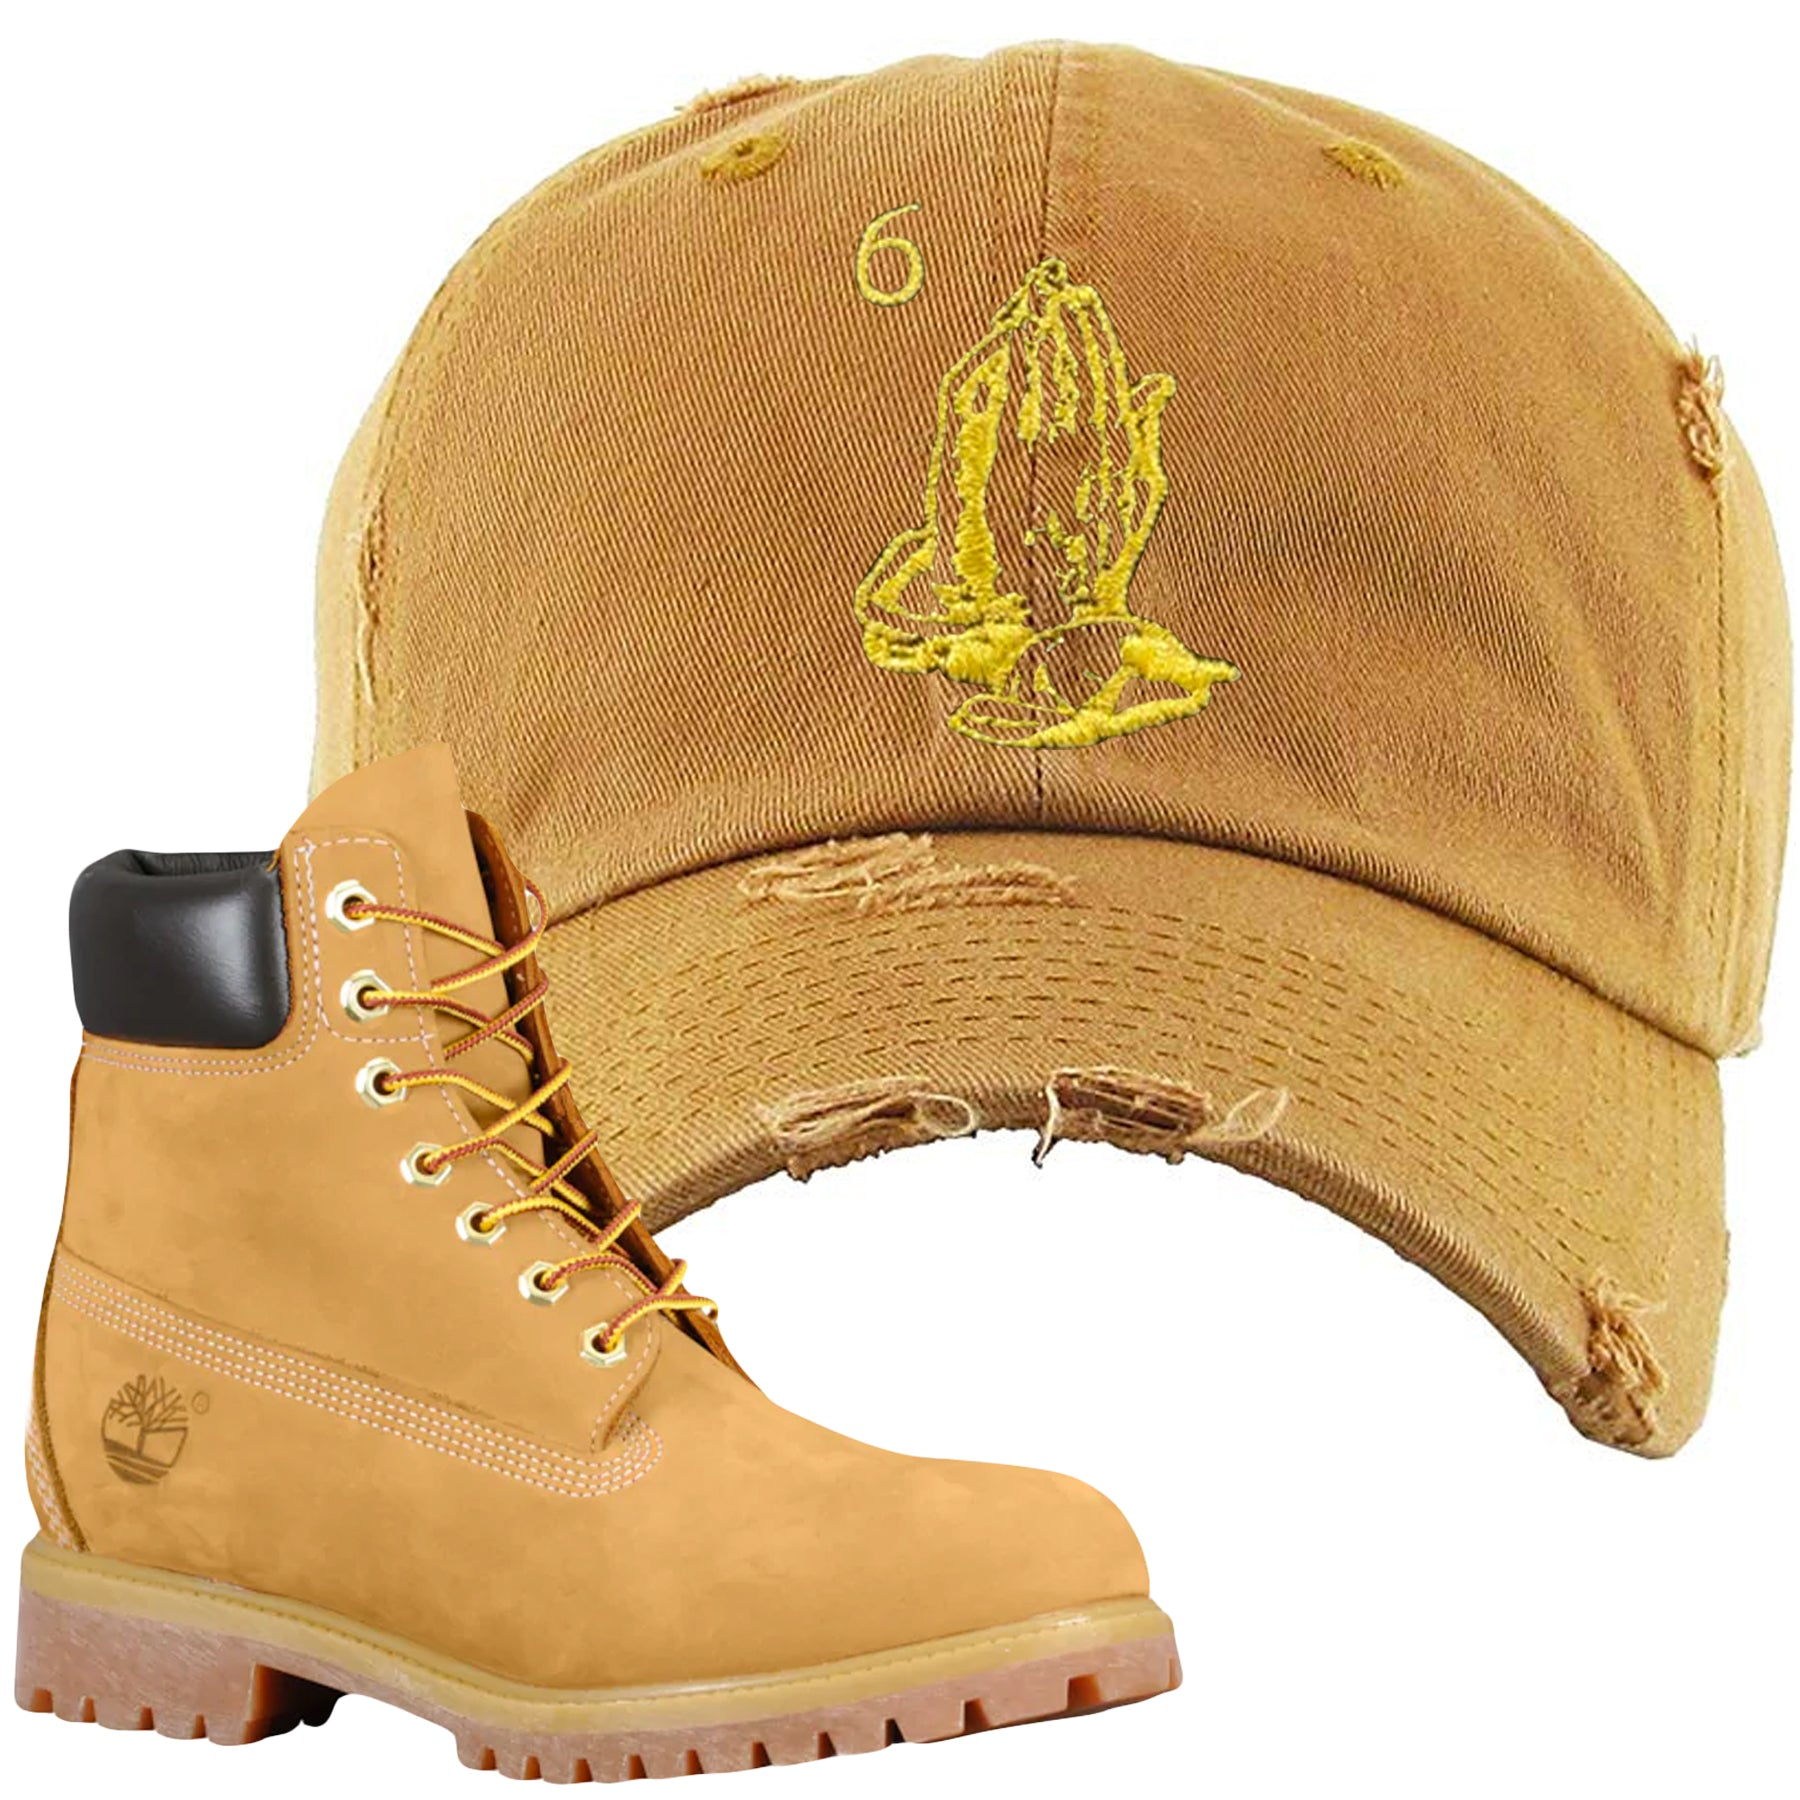 d14182fedbed65 Embroidered on the front of the Timberland Wheat Timbs Boot Matching Dad Hat  is a matching